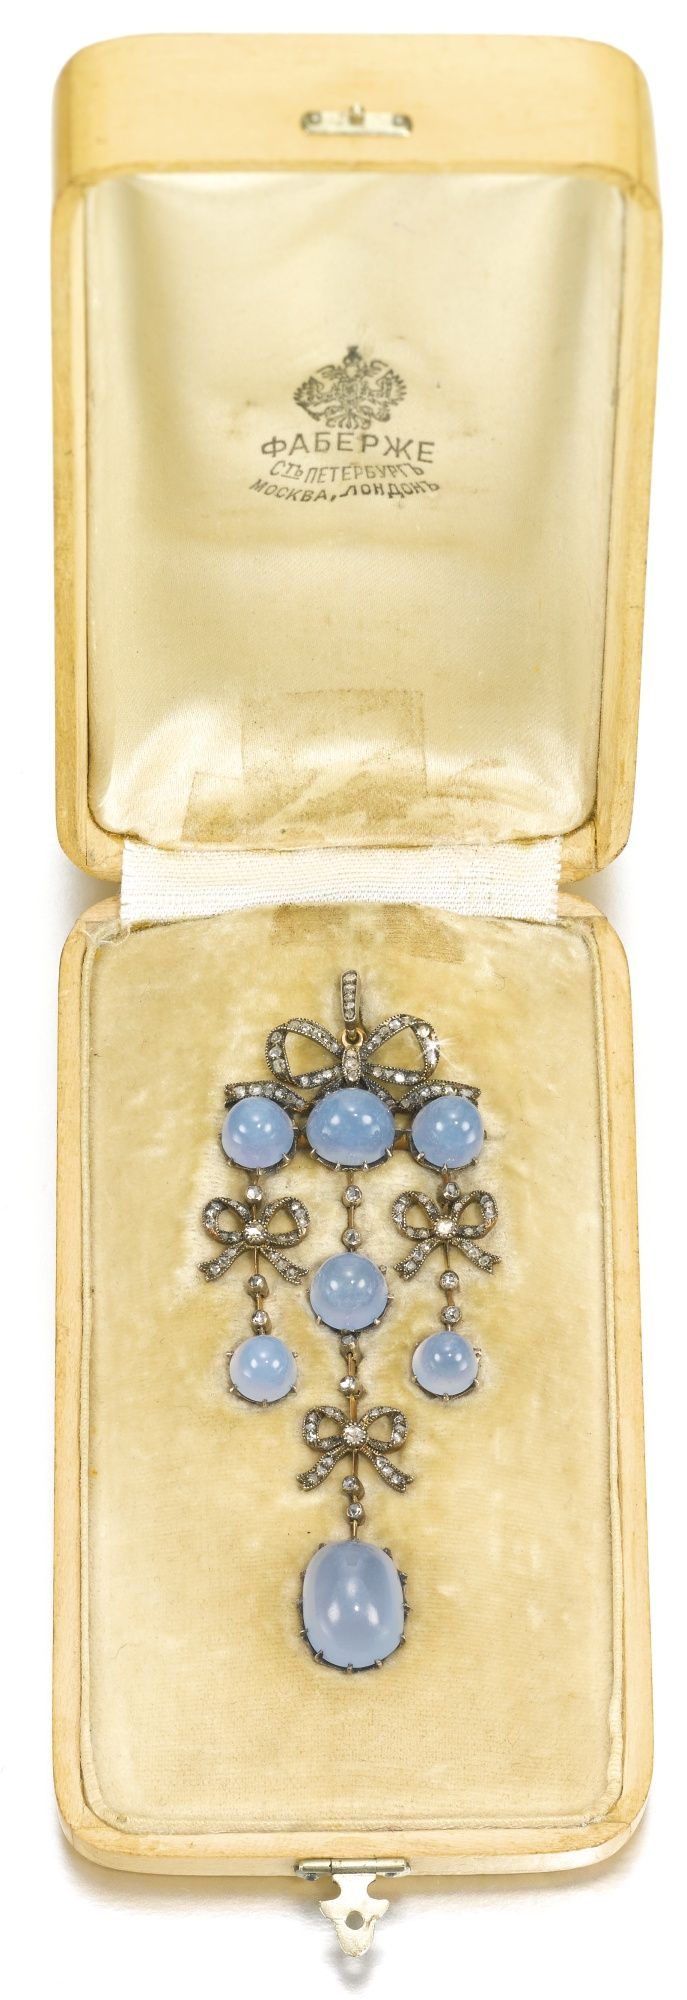 FABERGÉ~ jeweled gold pendant, probably St Petersburg, circa 1910. In neoclassical style, with seven blue chalcedony cabochons suspending from one large and three small rose-cut diamond-set bows, diamond-set suspension loop.